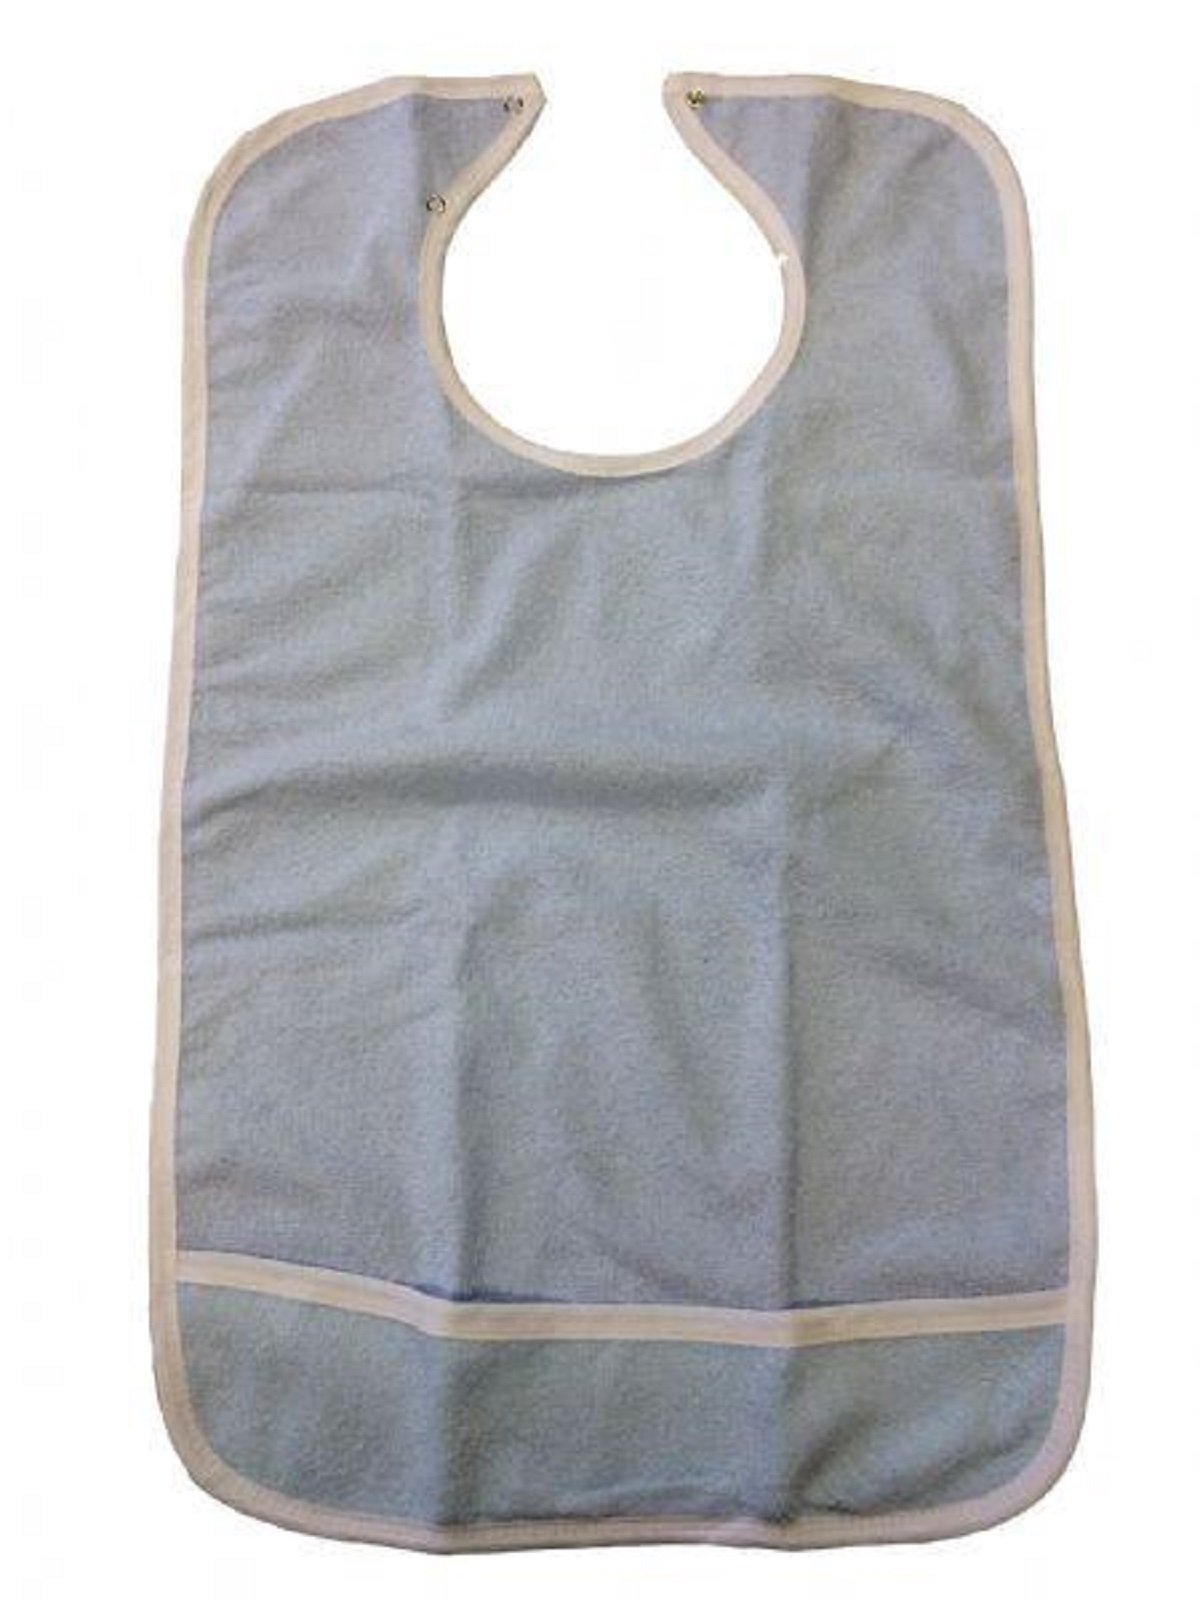 BH CRUMB CATCHER ADULT BIBS WITH SNAP CLOSURE 3 Pack